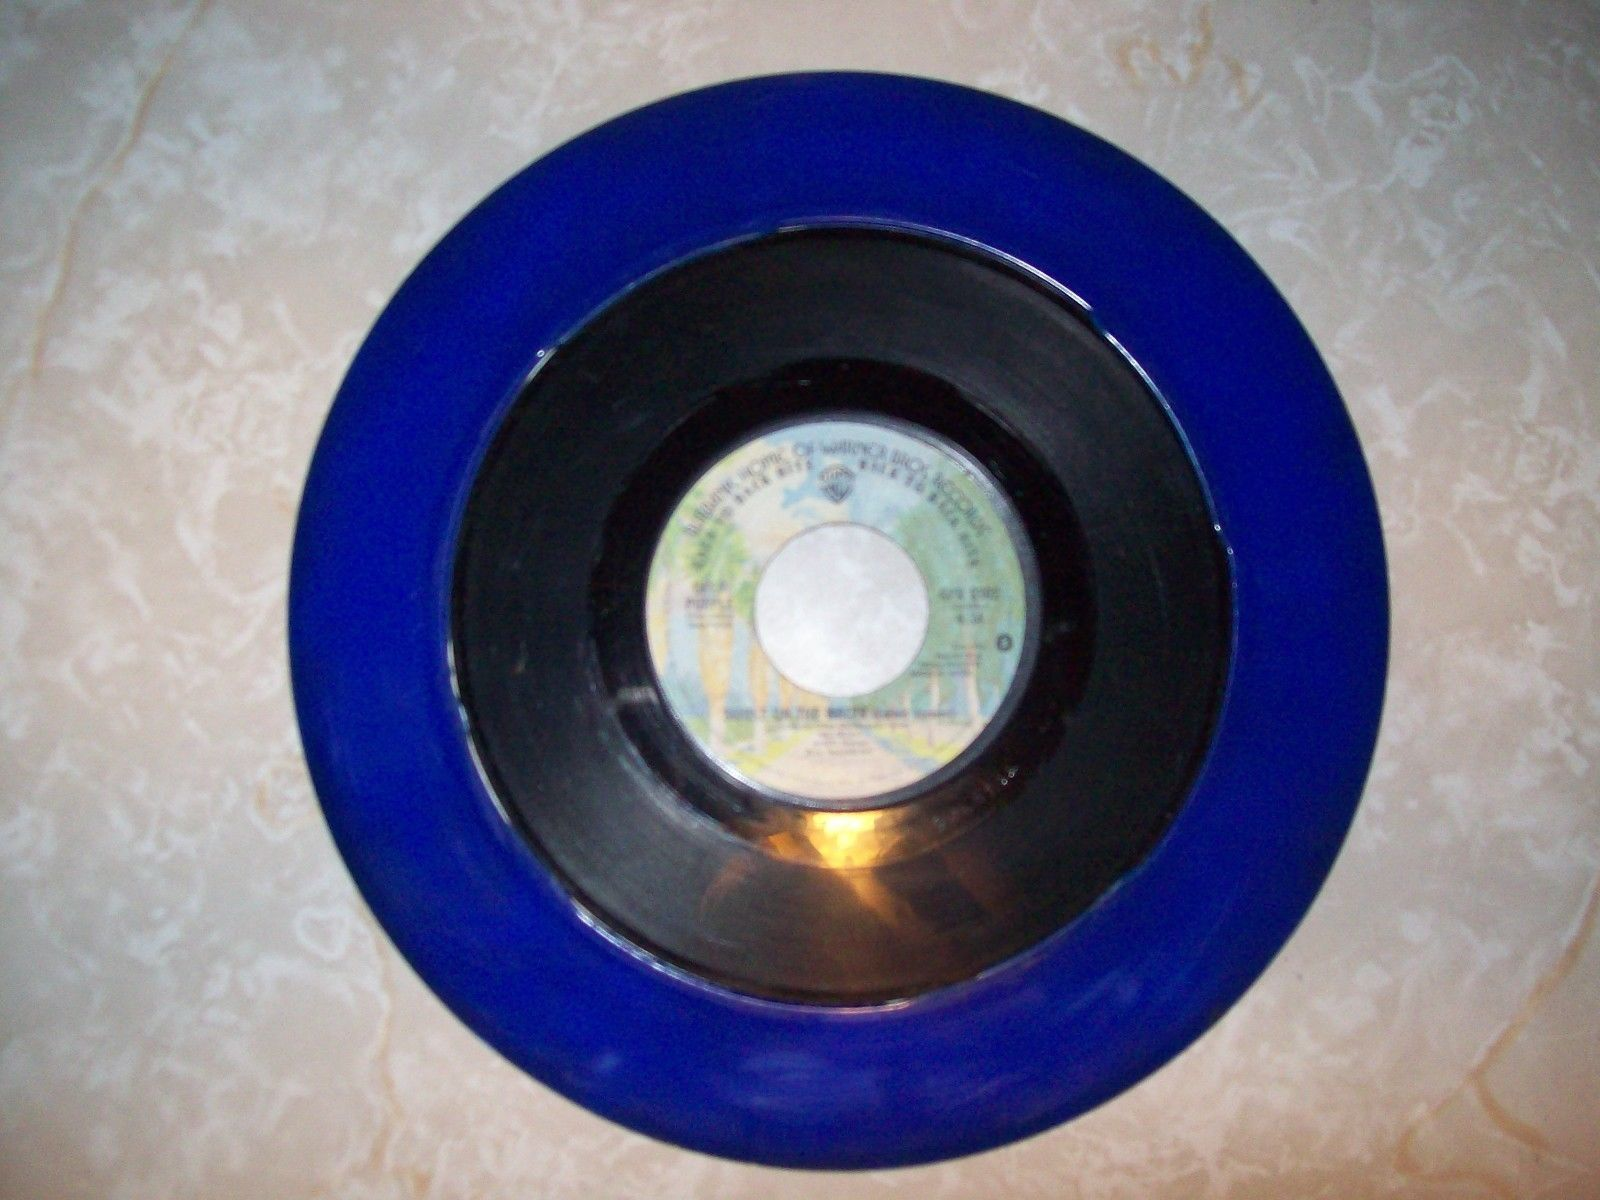 45 record adapter